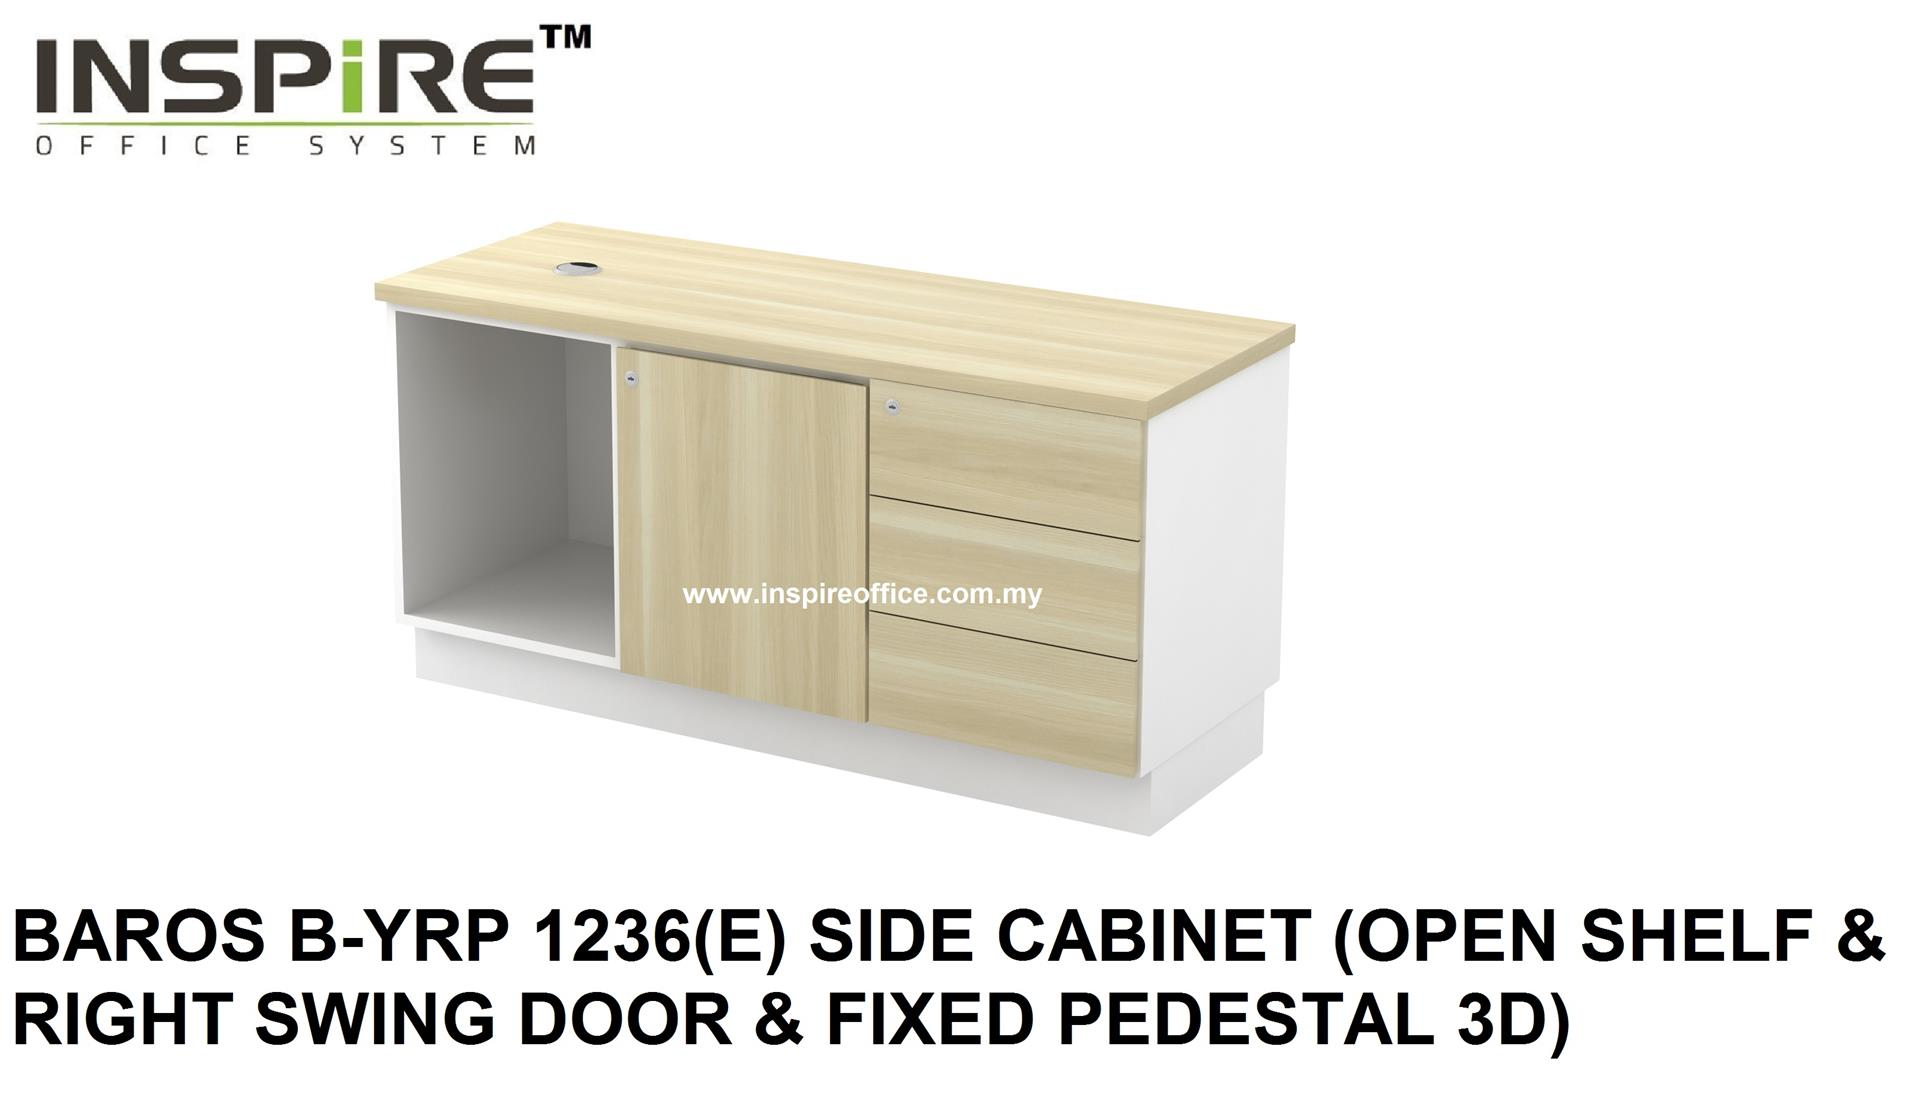 BAROS B-YRP 1236(E) SIDE CABINET (SHELF & SWING DOOR & PEDESTAL)